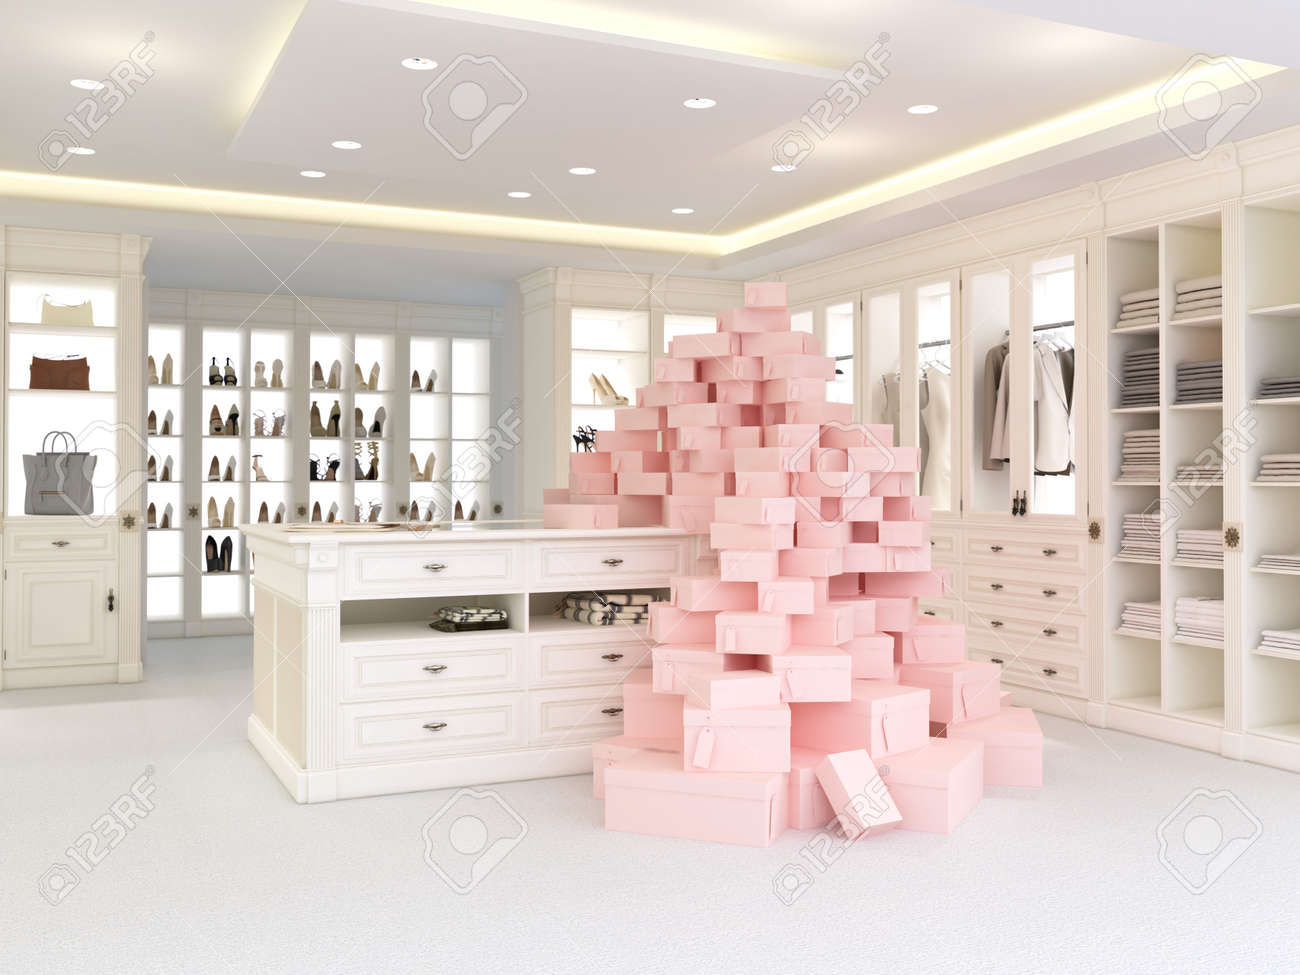 An American Luxury Walkin Closet With Many Space. 3d Rendering Stock Photo    41192228